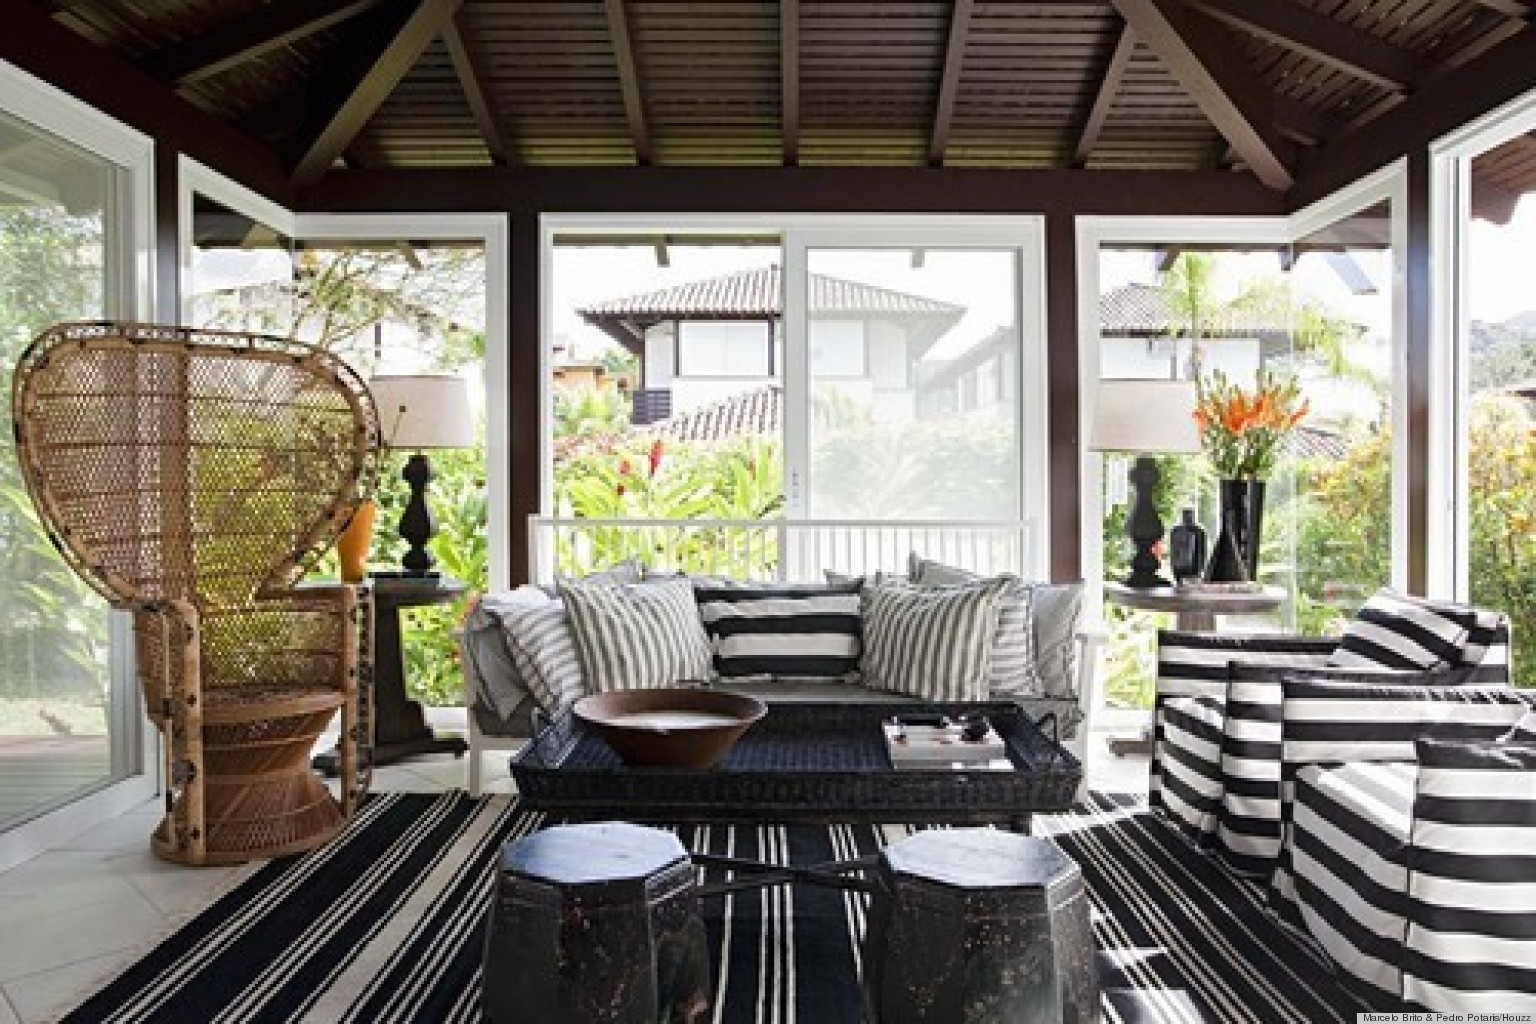 10 Impressive Sunrooms That We Need To Sip Lemonade In Now PHOTOS